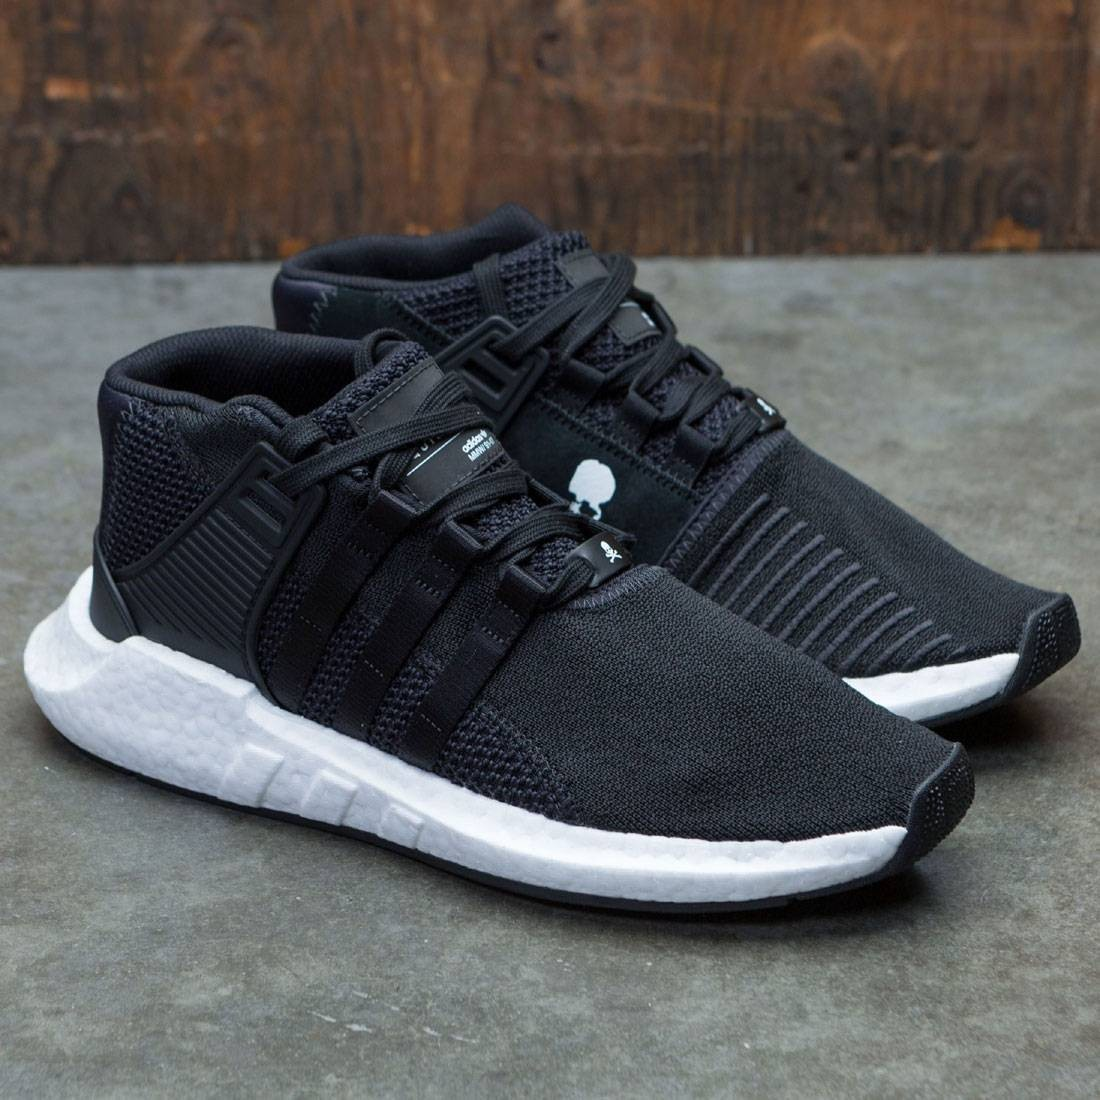 check out d8694 191e3 ... Adidas x Mastermind World Men EQT Support 9317 Mid (black core black  footwear white) ...